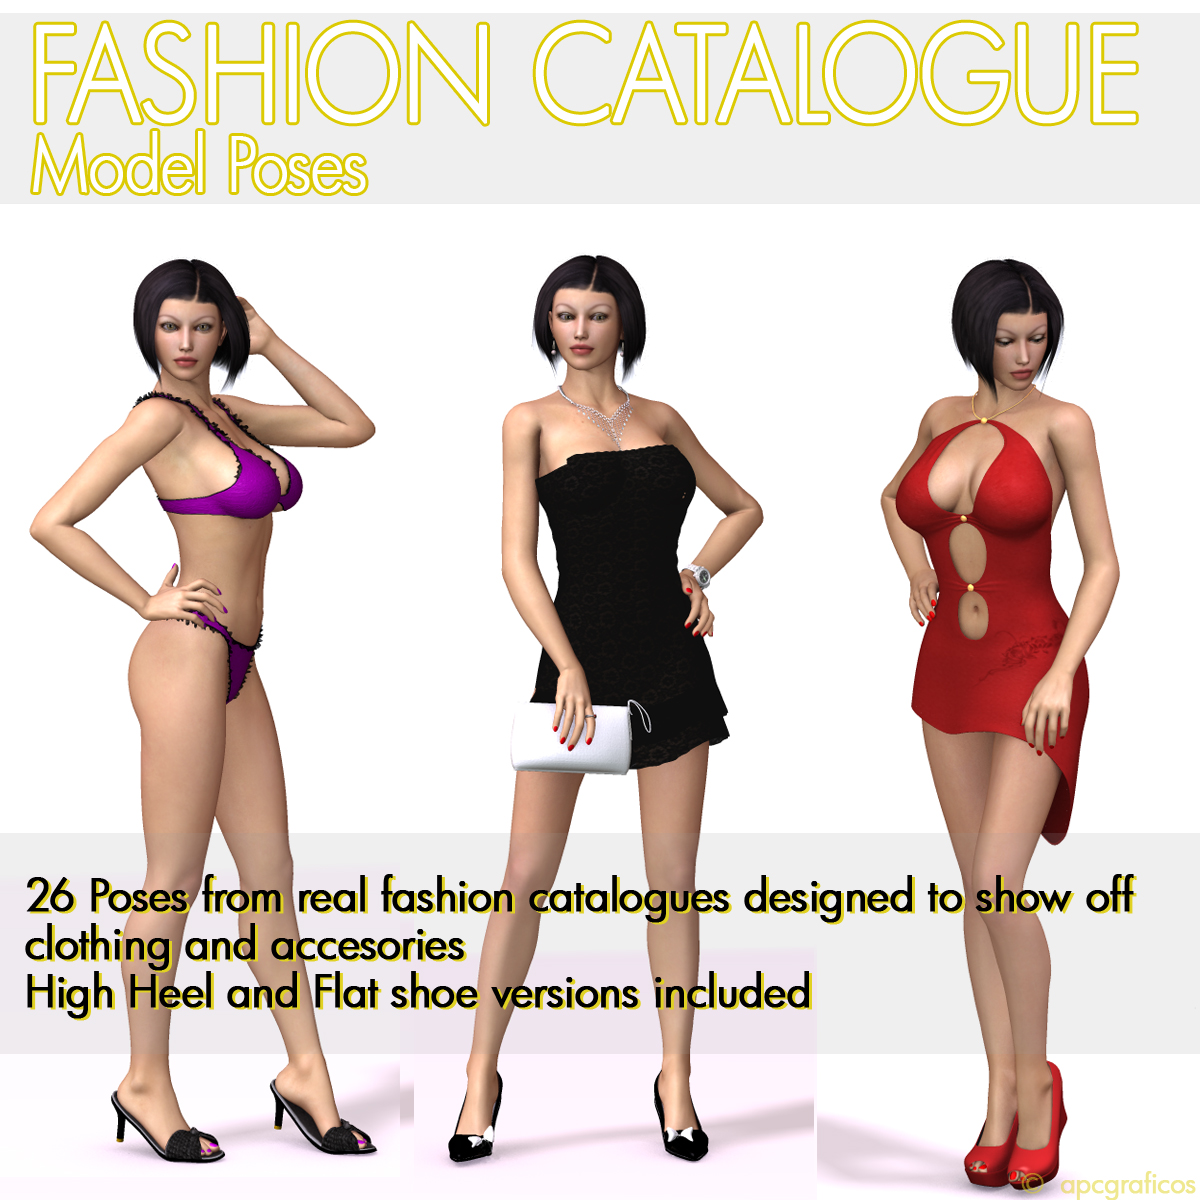 Fashion Catalogue Model Poses for V4 by apcgraficos